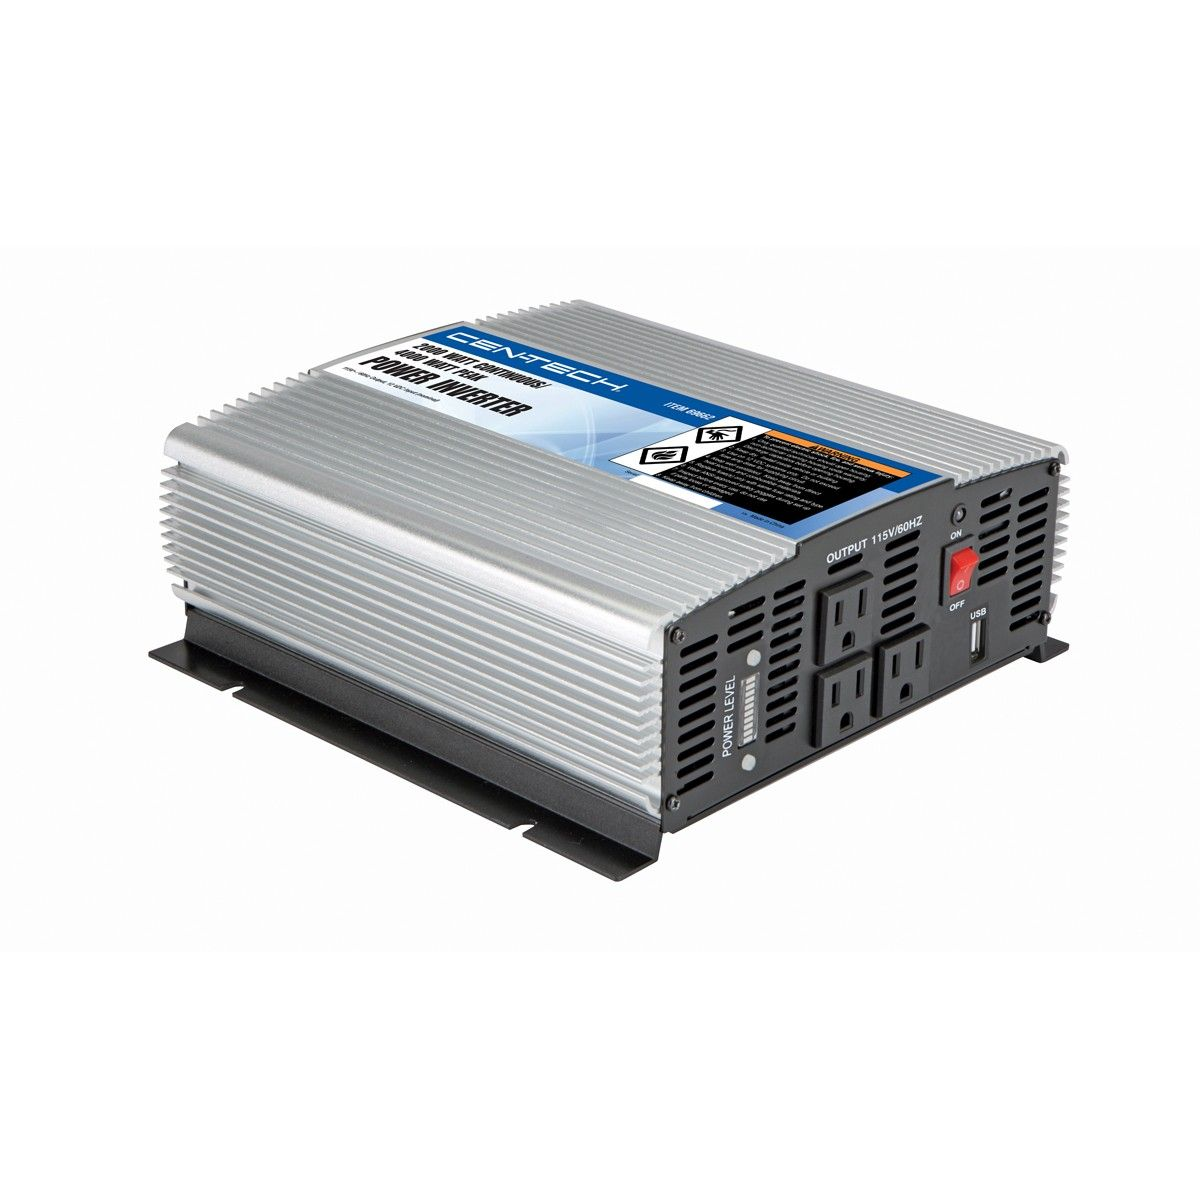 $129.99 Cen-Tech 69662 2000 Watt Continuous/4000 Watt Peak Power Inverter  Black Friday, #BlackFriday, #HarborFreight